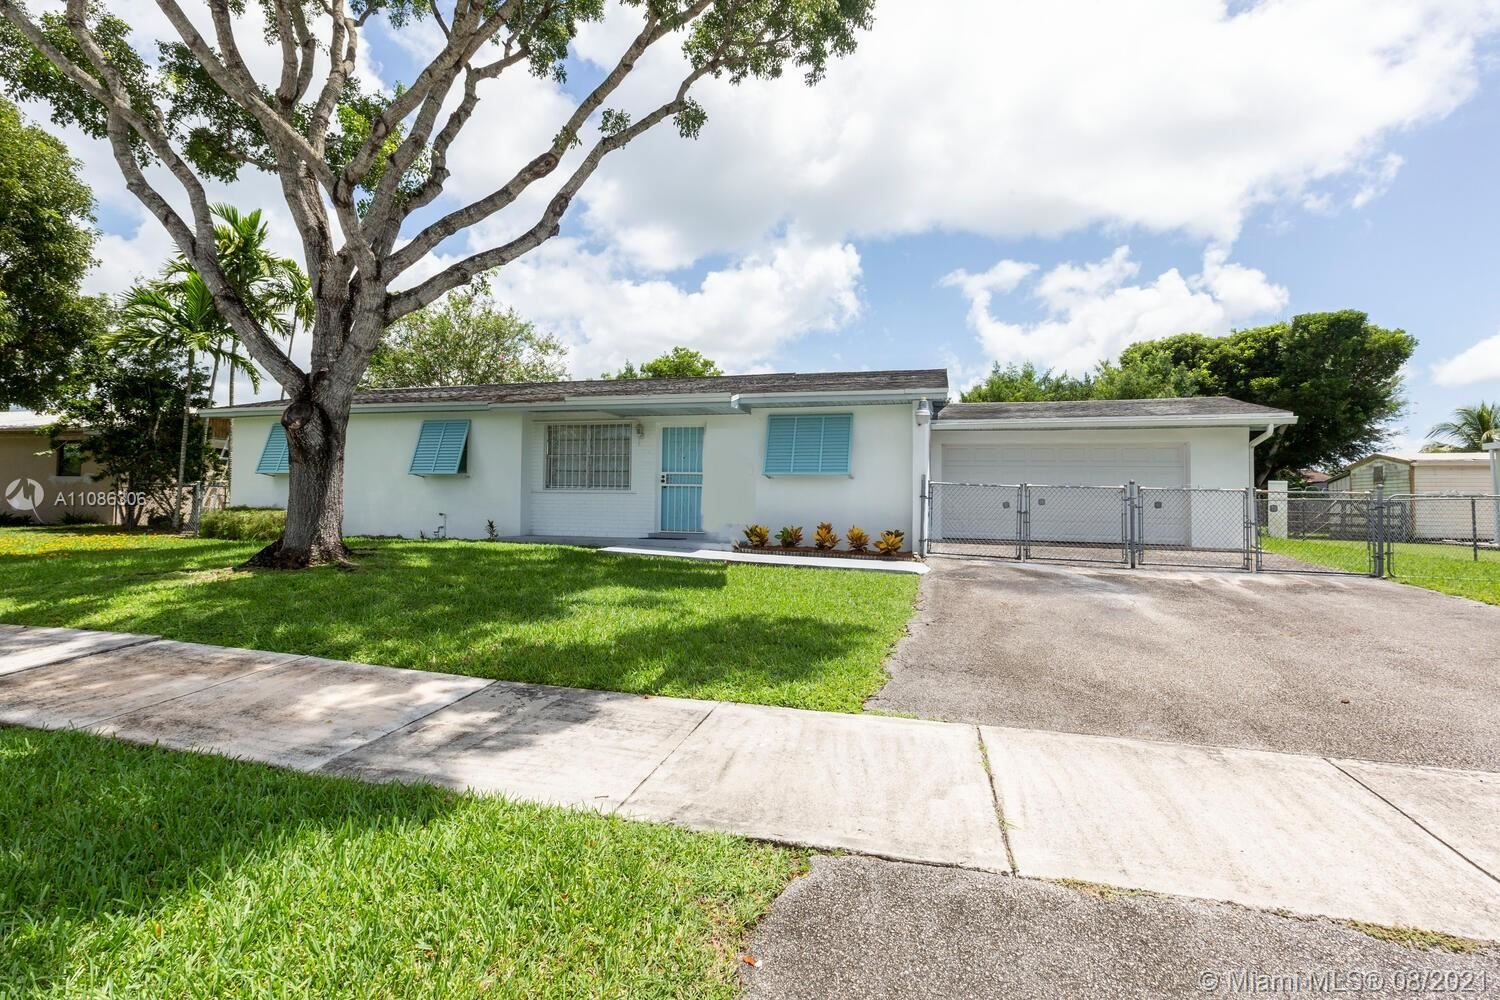 1701 NW 13th Ave, Homestead, FL 33030 - #: A11086306